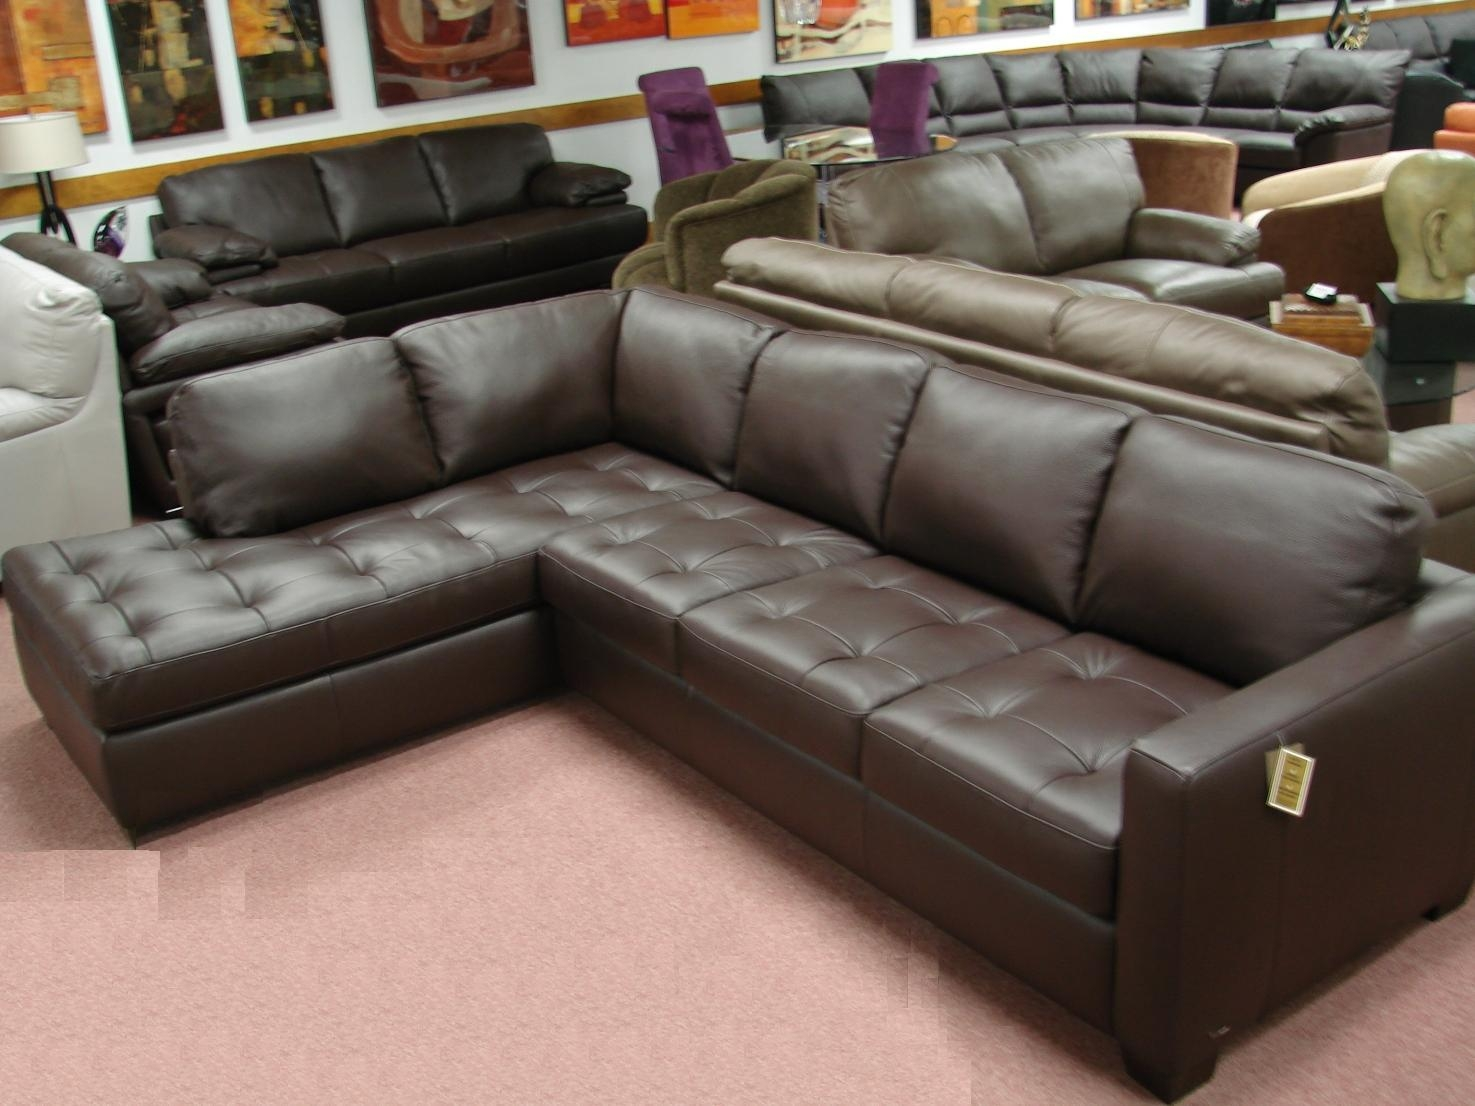 20 ideas of leather sofa sectionals for sale sofa ideas for Leather sofas for sale